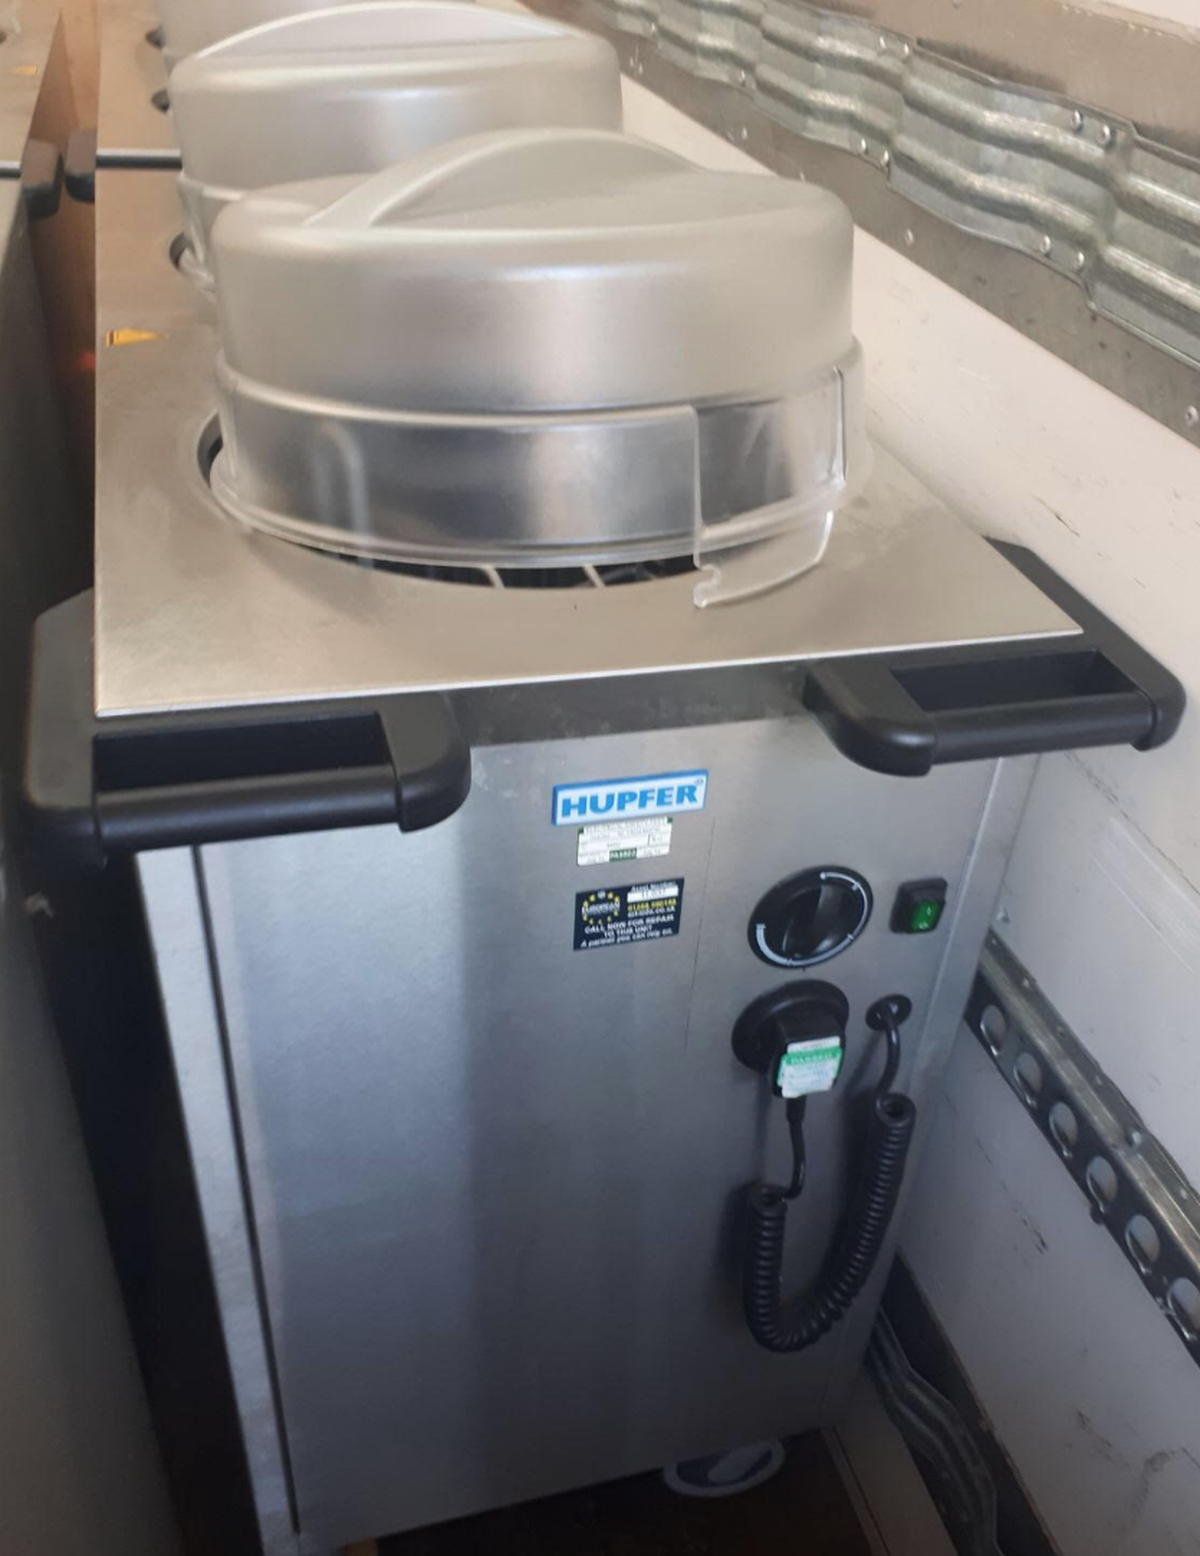 Used Plate Warmer ~ Secondhand catering equipment plate lowerater warmer